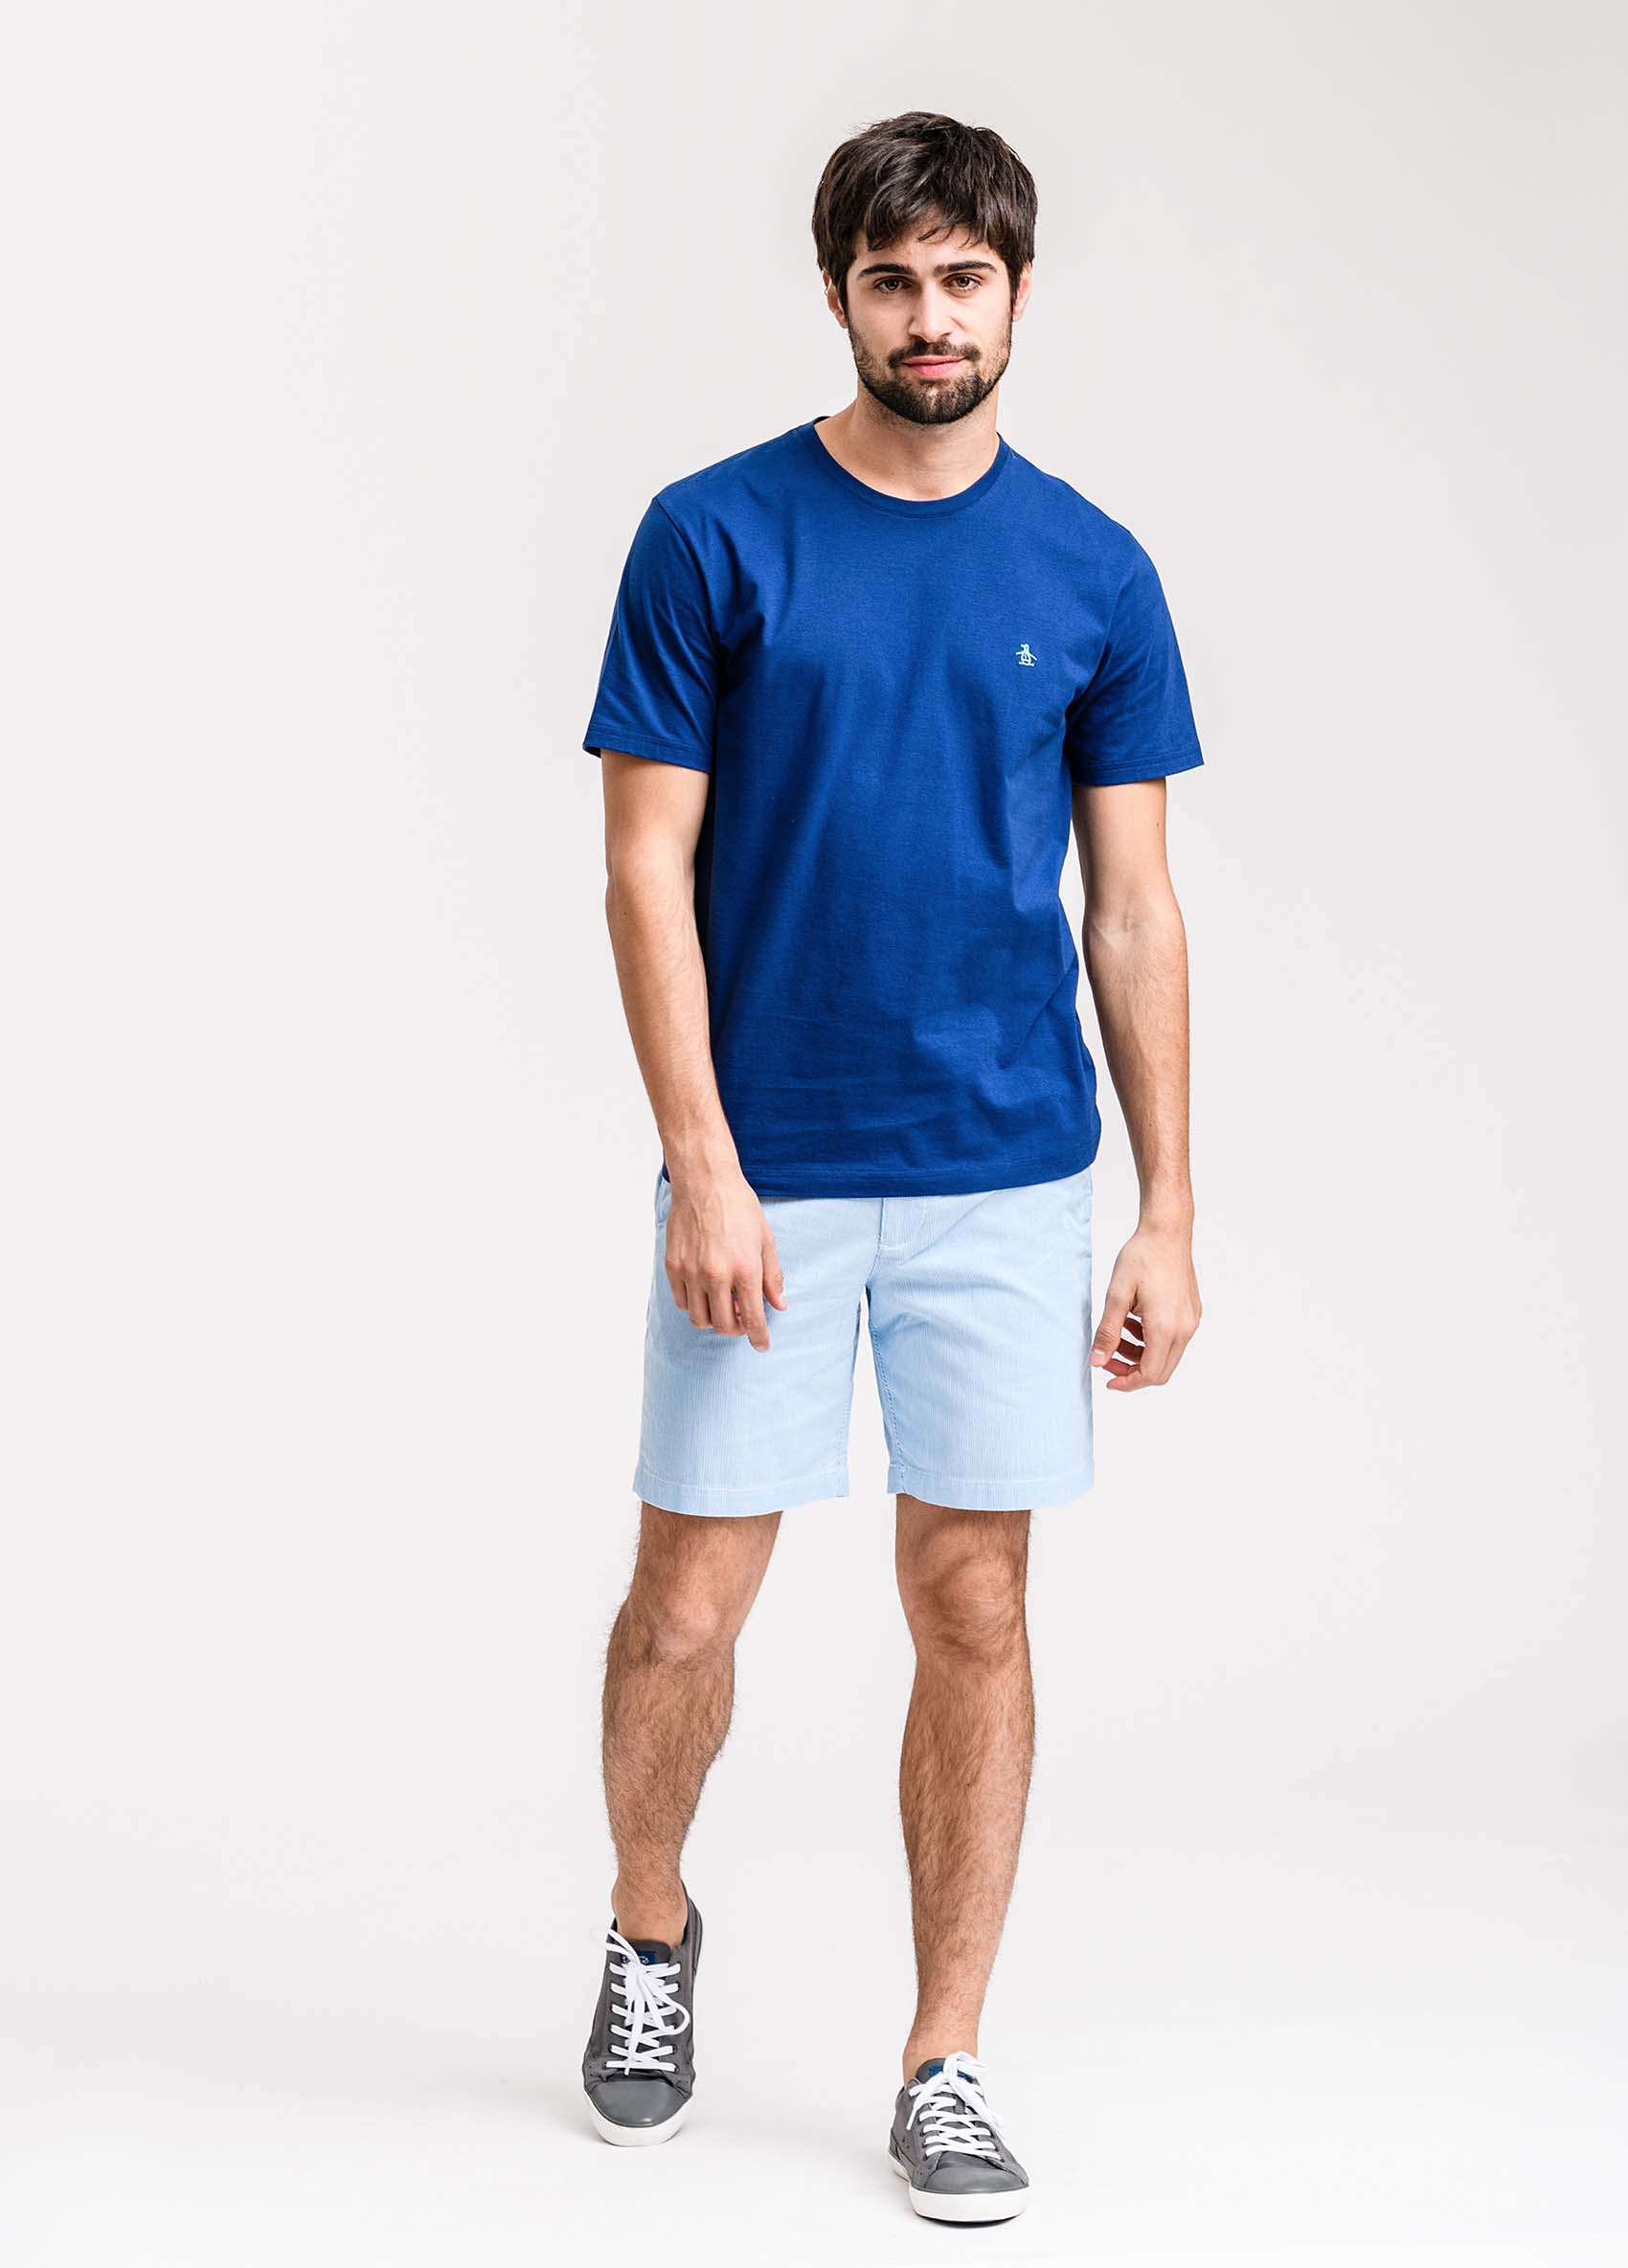 penguin_remera-basic-tee_29-26-2018__picture-2588